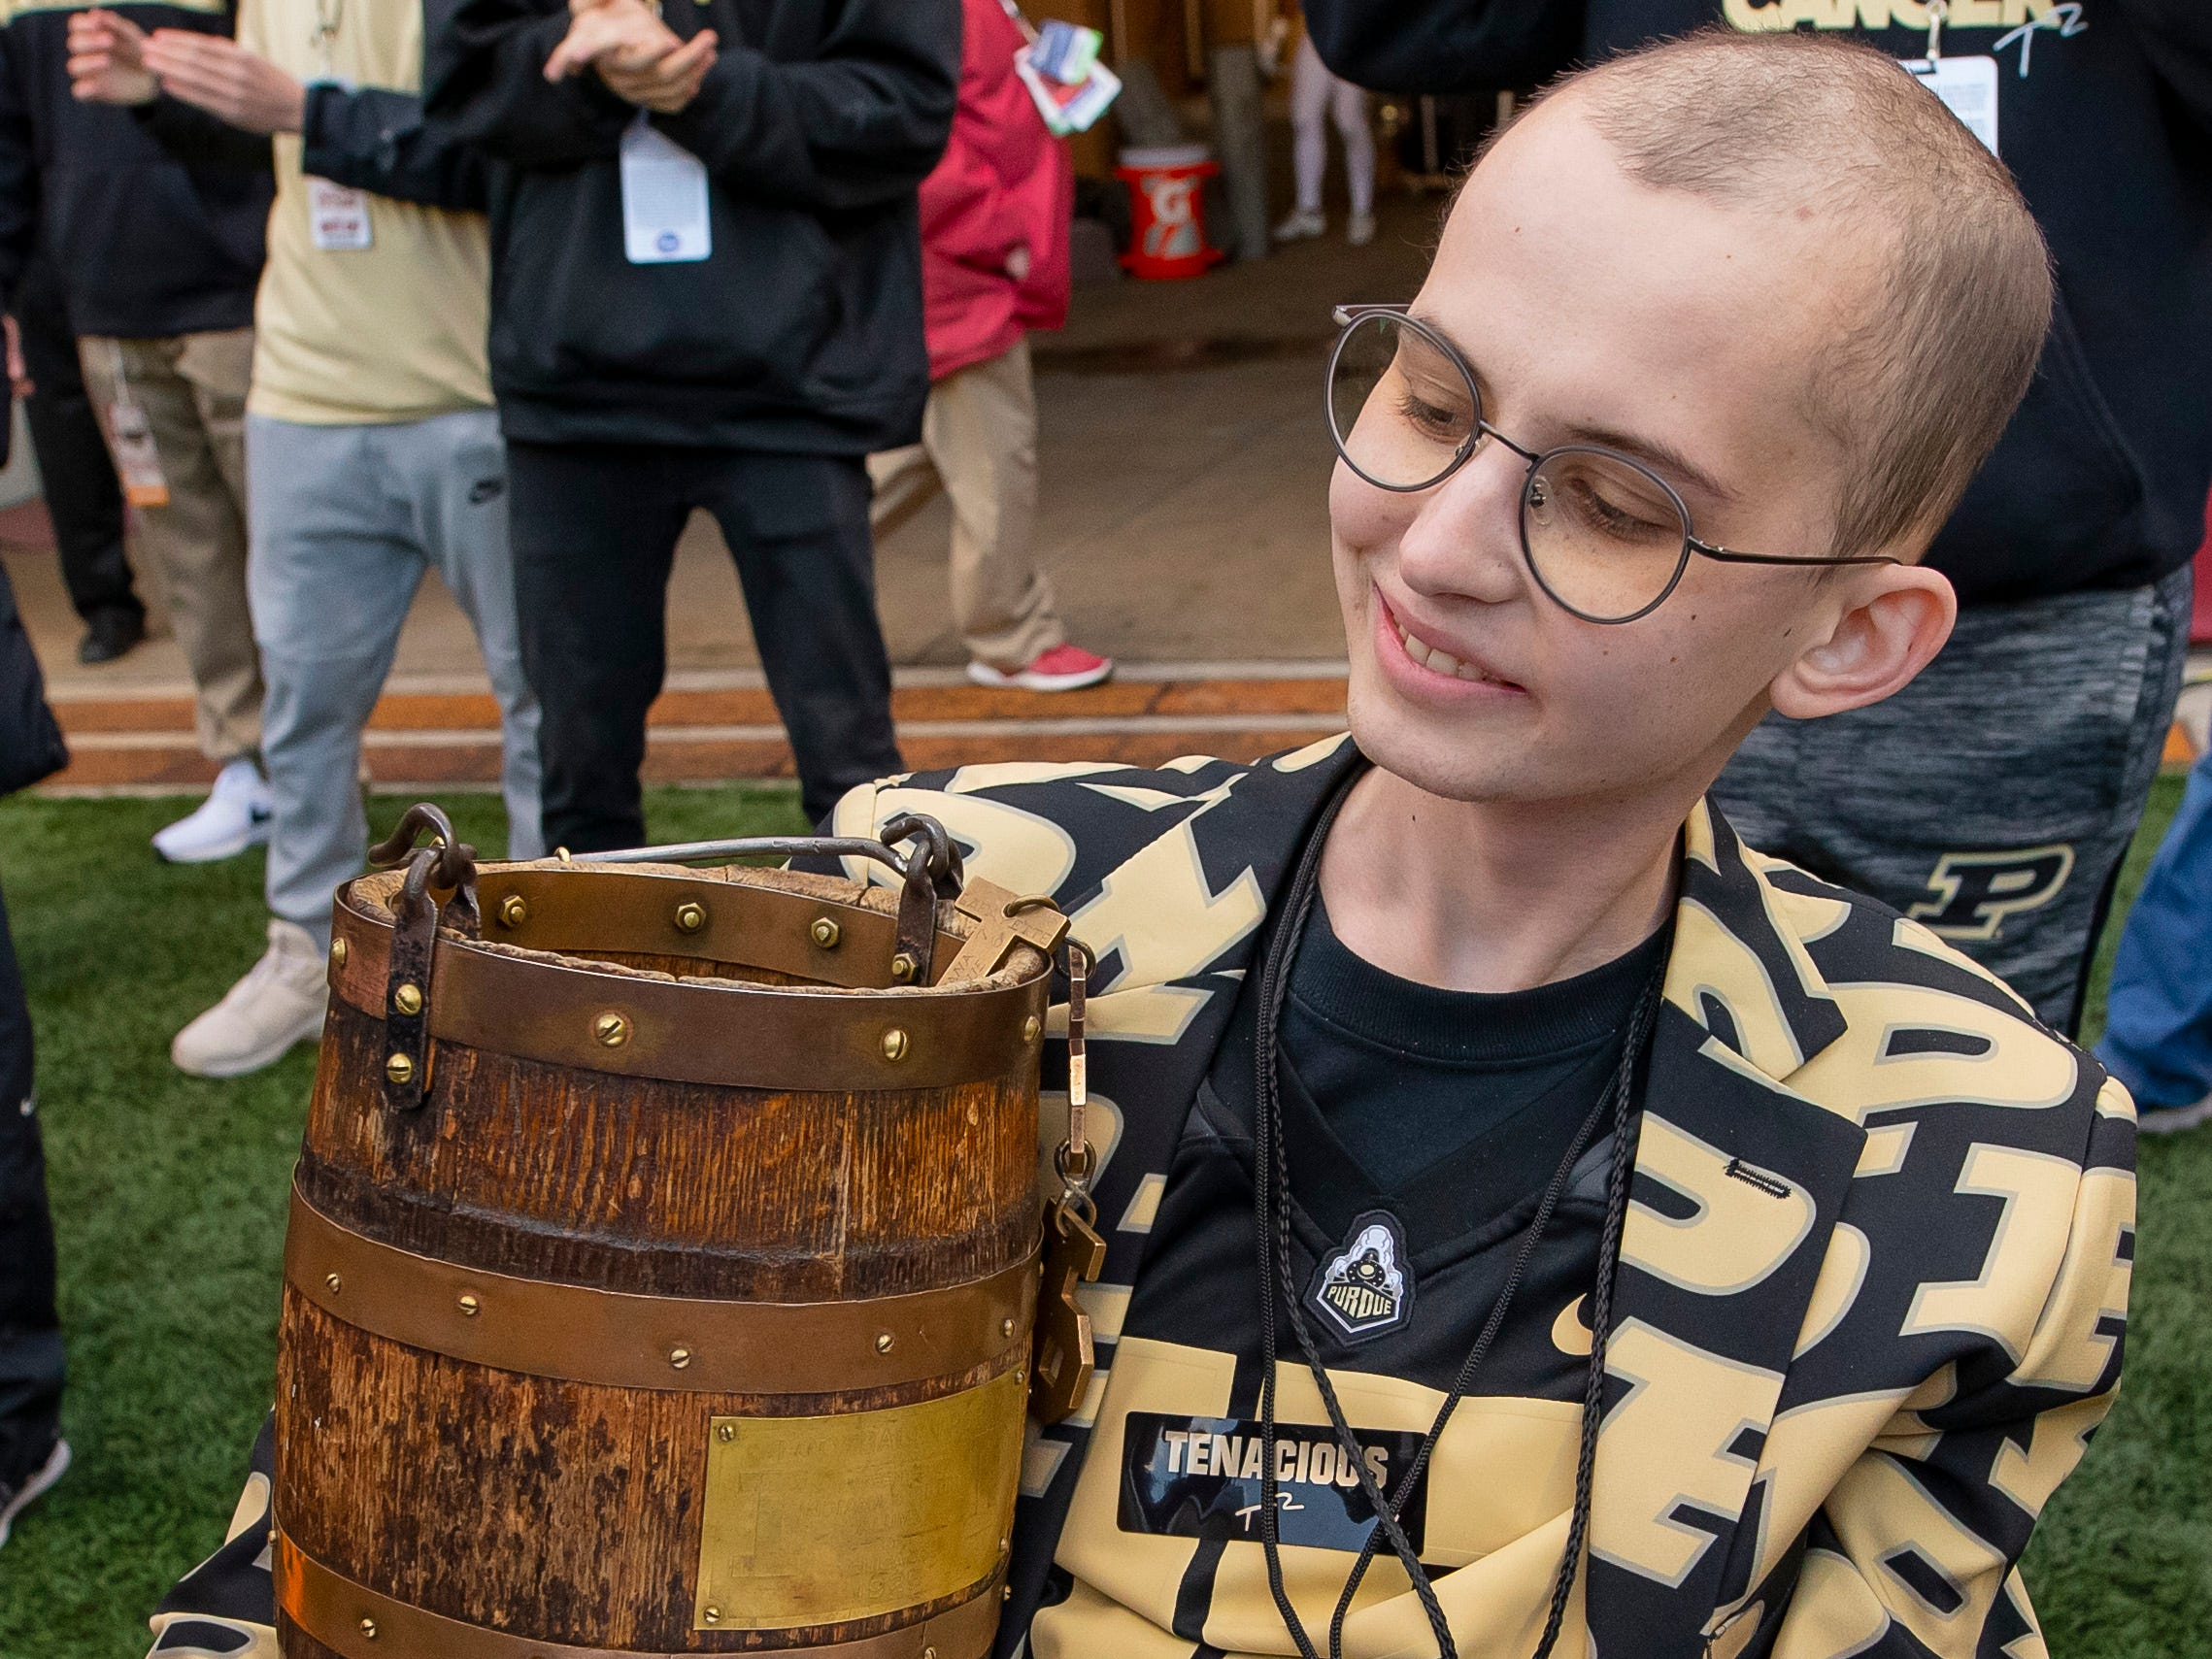 Tyler Trent, Purdue student and Boilermakers super fan, of bone cancer. Jan. 1. He was 20.